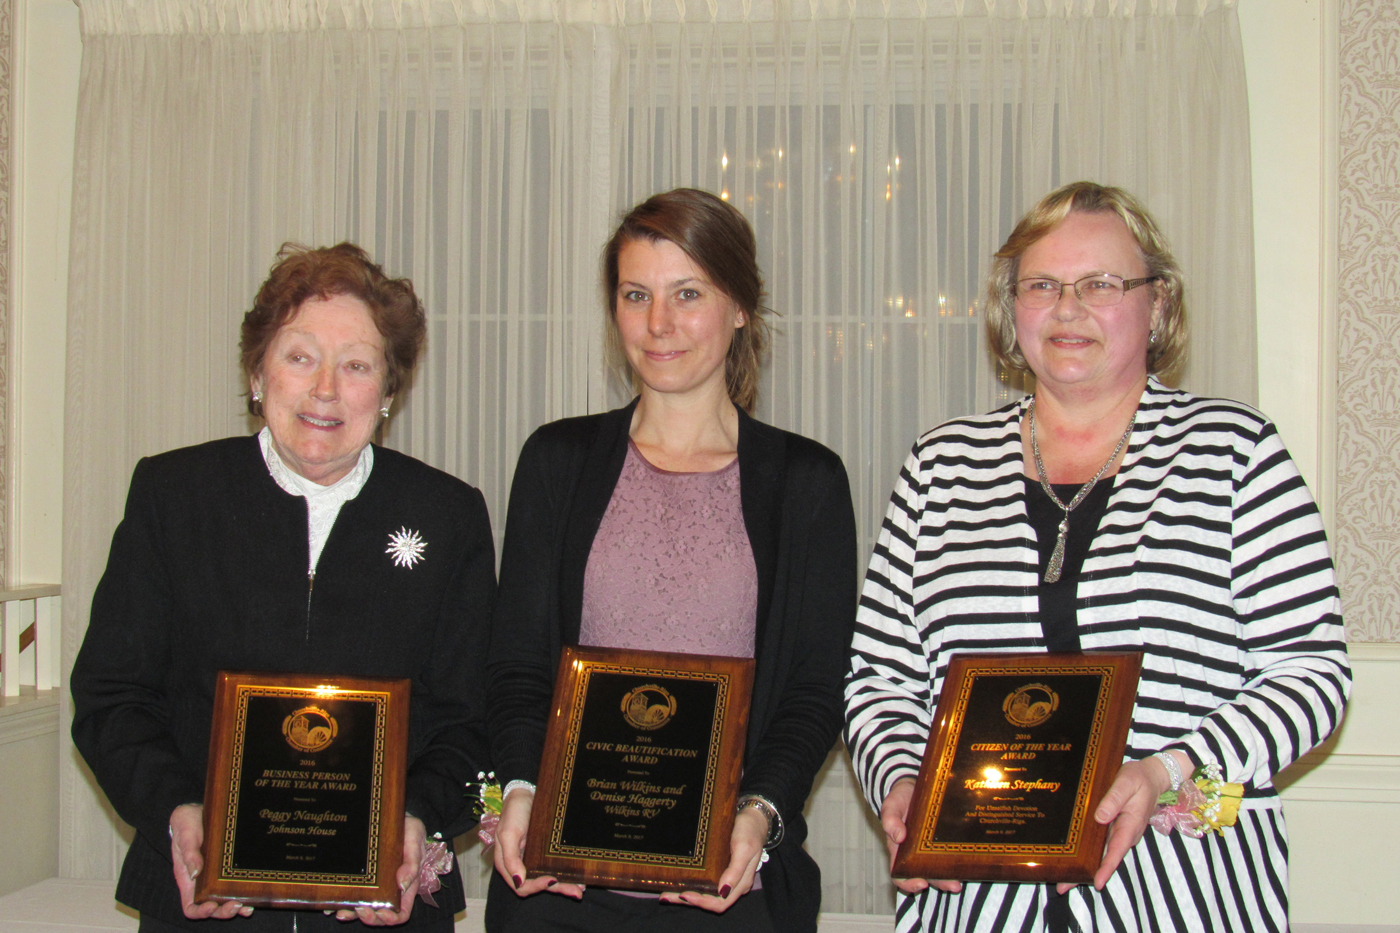 Greater Churchville-Riga Chamber of Commerce Awards Winners (l to r):  Peggy Naughton, Business Person of the Year; Denise Haggerty of Wilkins RV, Civic Beautification Award; Kathleen Stephany, Citizen of the Year. Not pictured:  Sue Davis, Chamber of Commerce Member of the Year. K. Gabalski photo